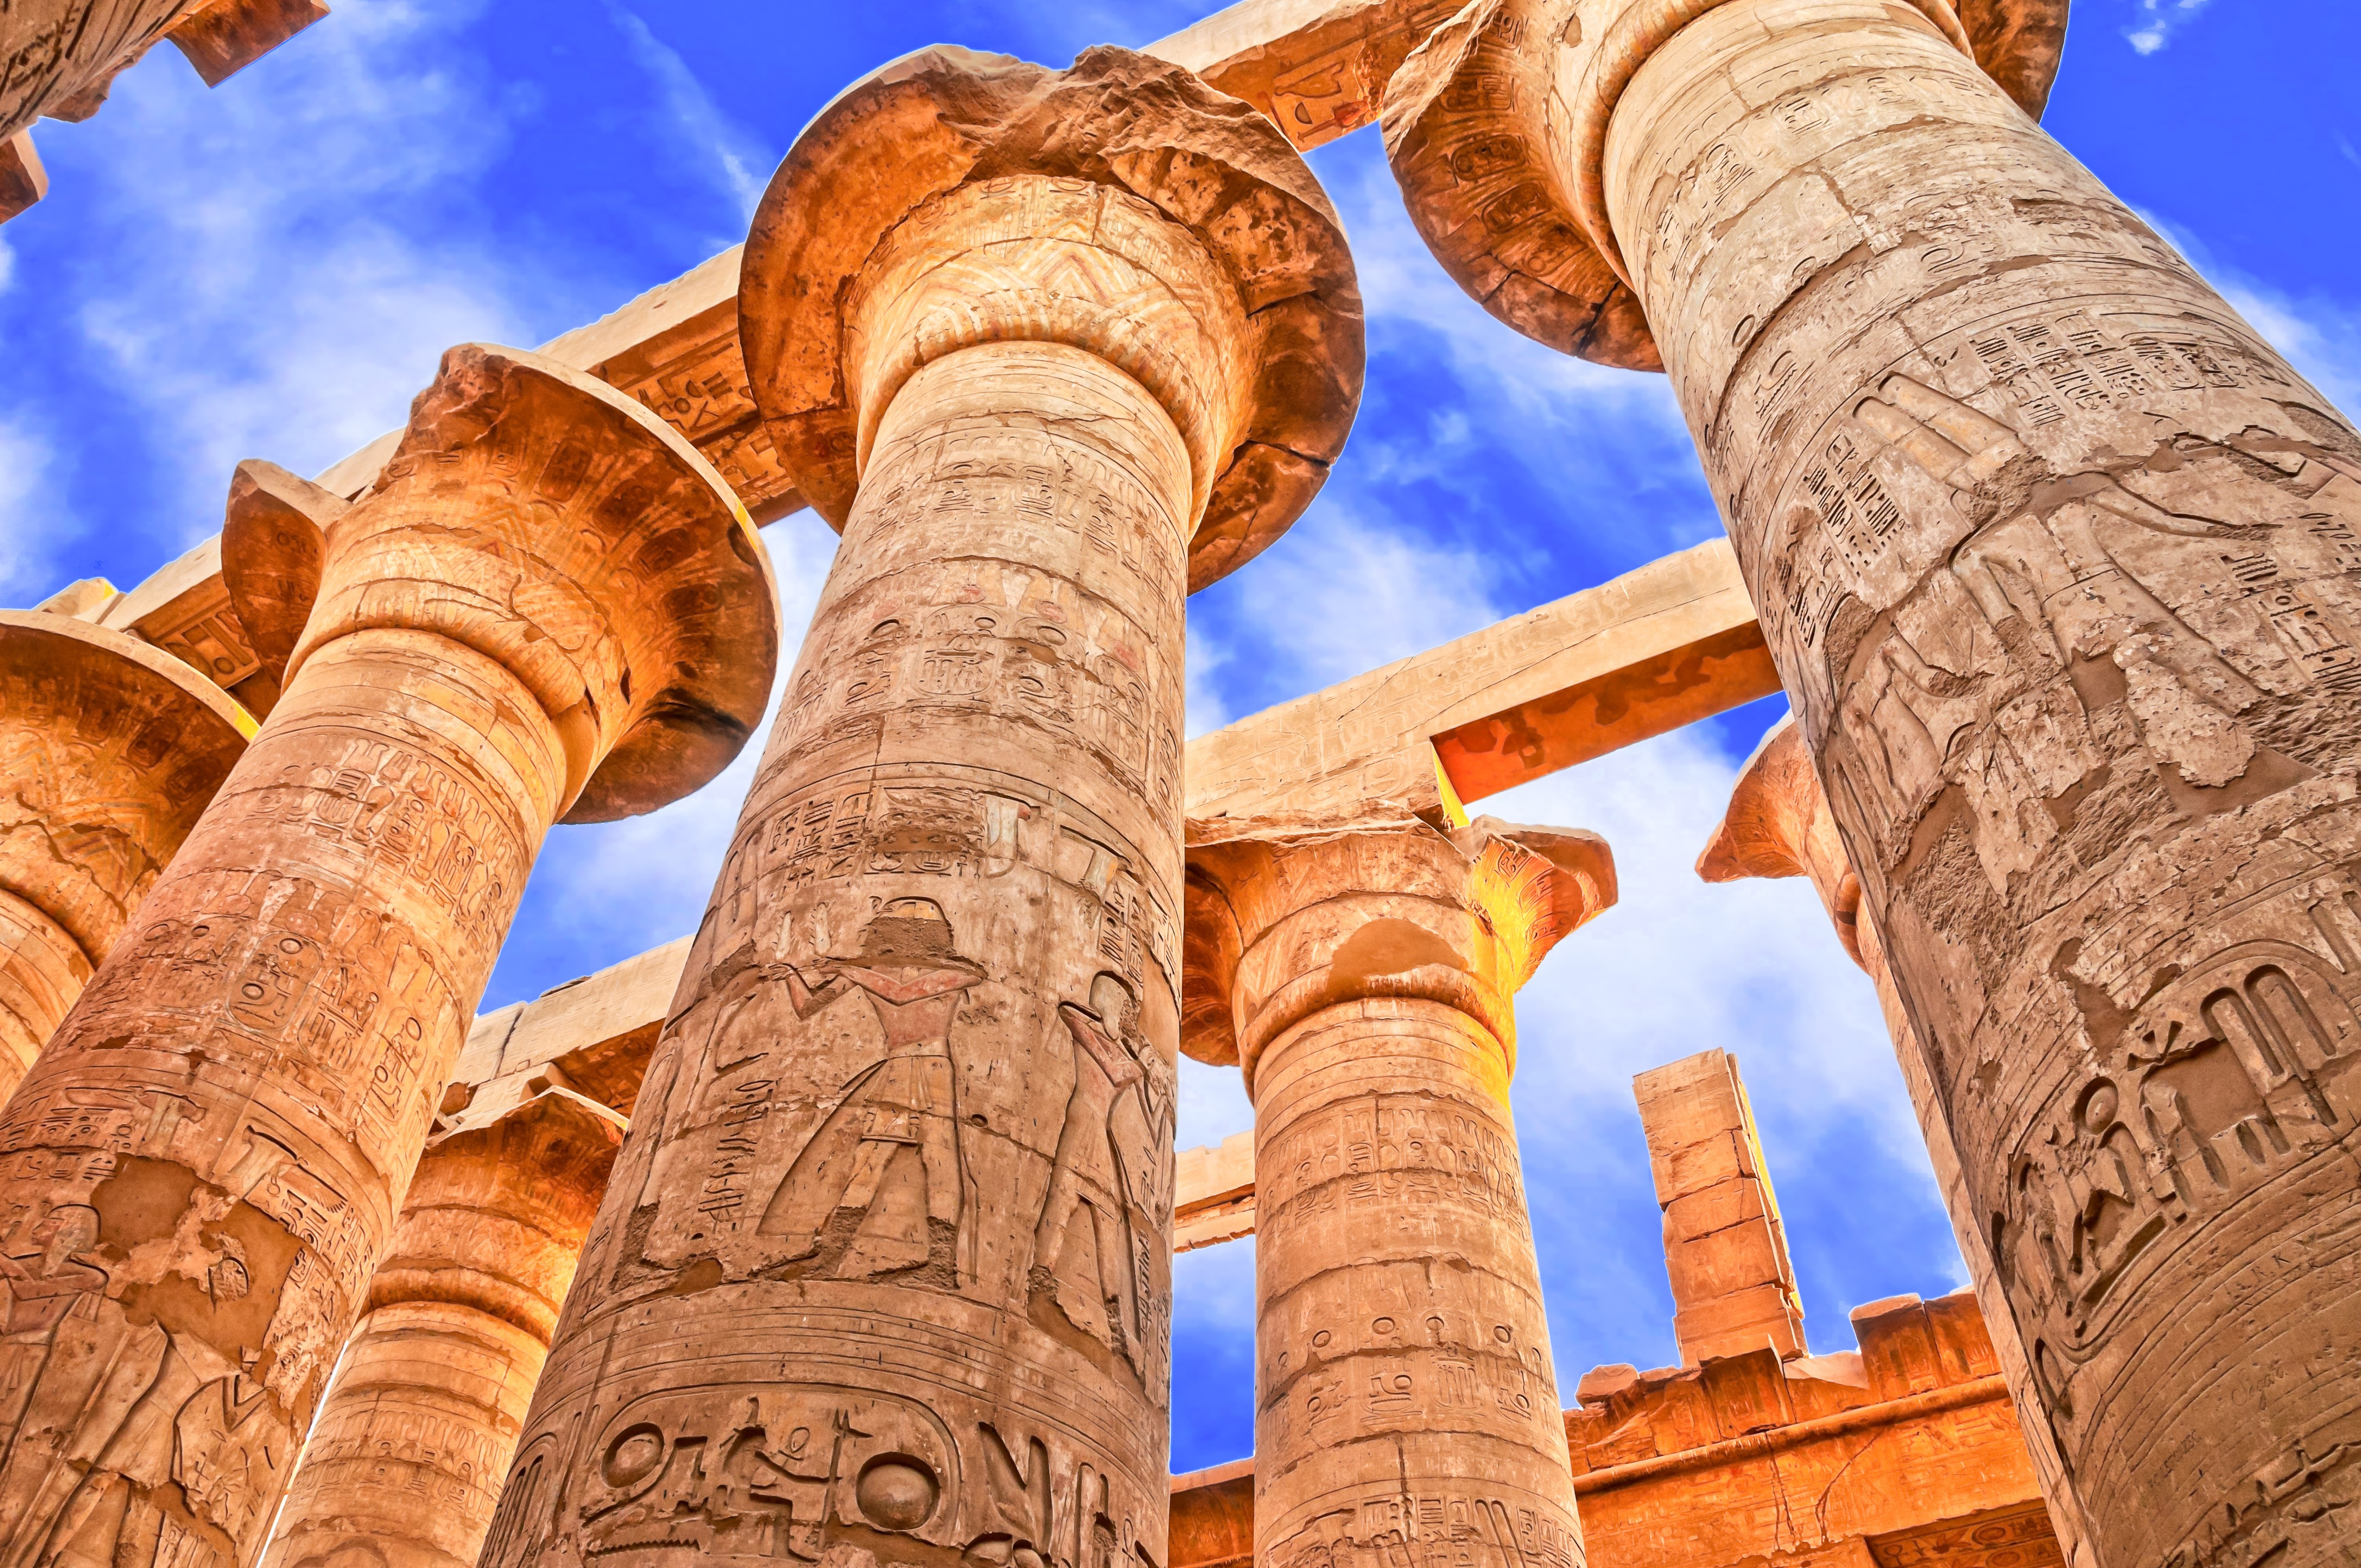 Must-see treasures of Luxor and Cairo budget tour